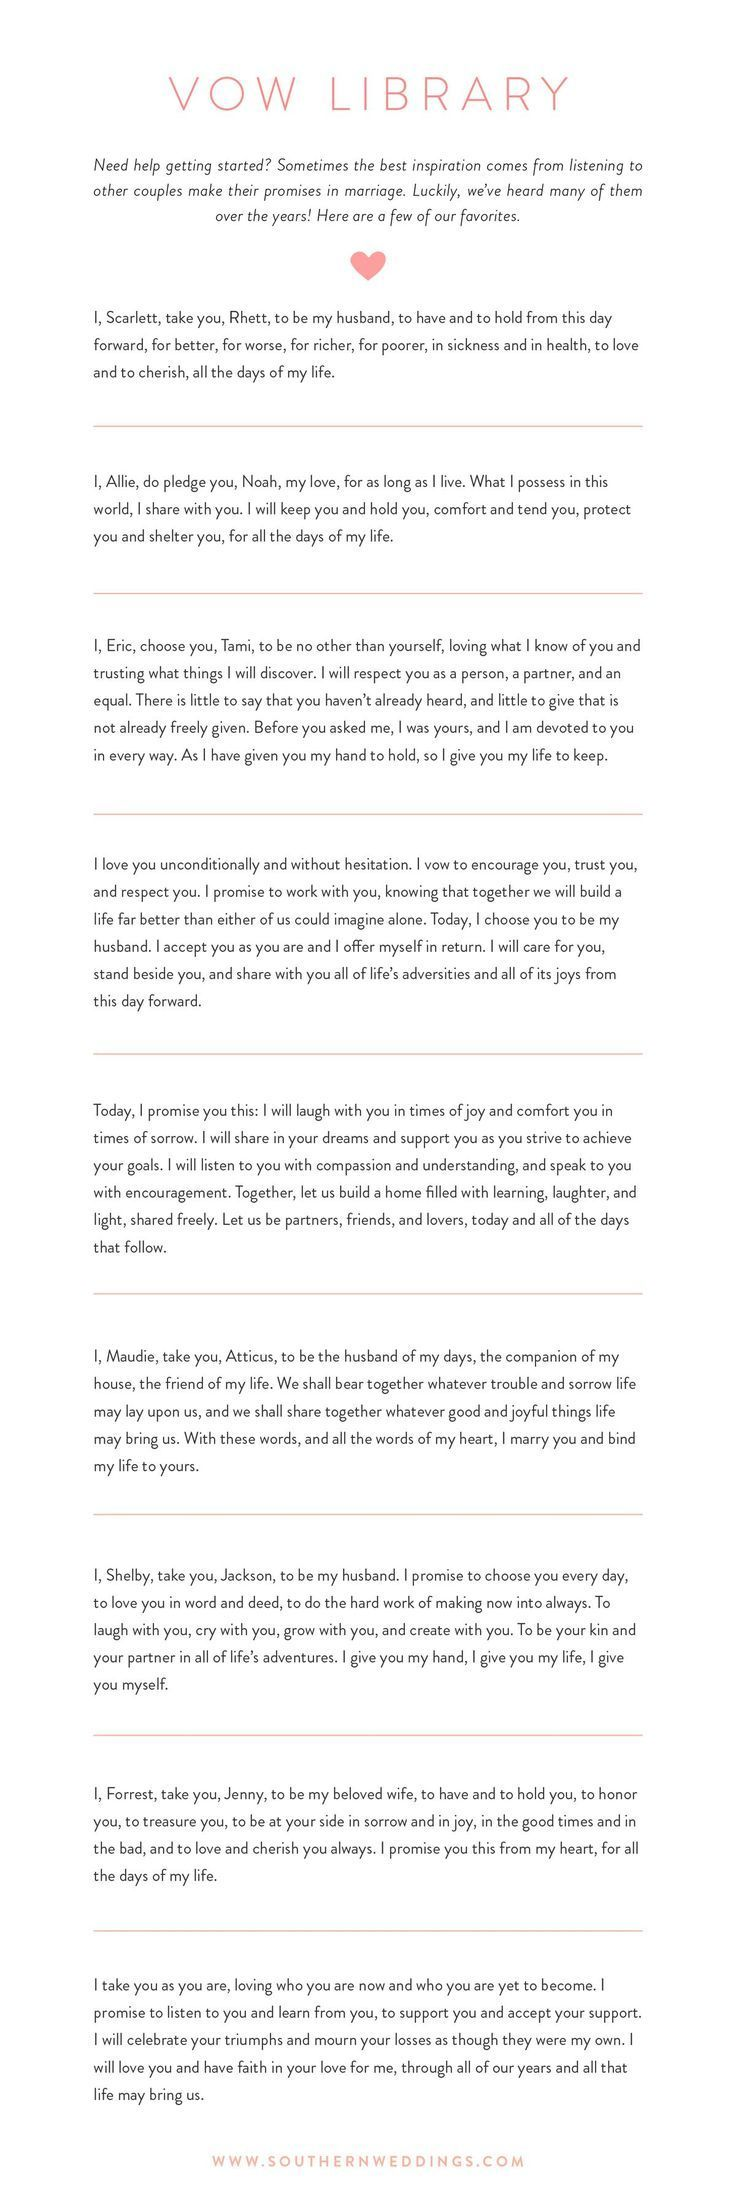 bride wedding vows 10 best photos - wedding vows  - http://cuteweddingideas.com